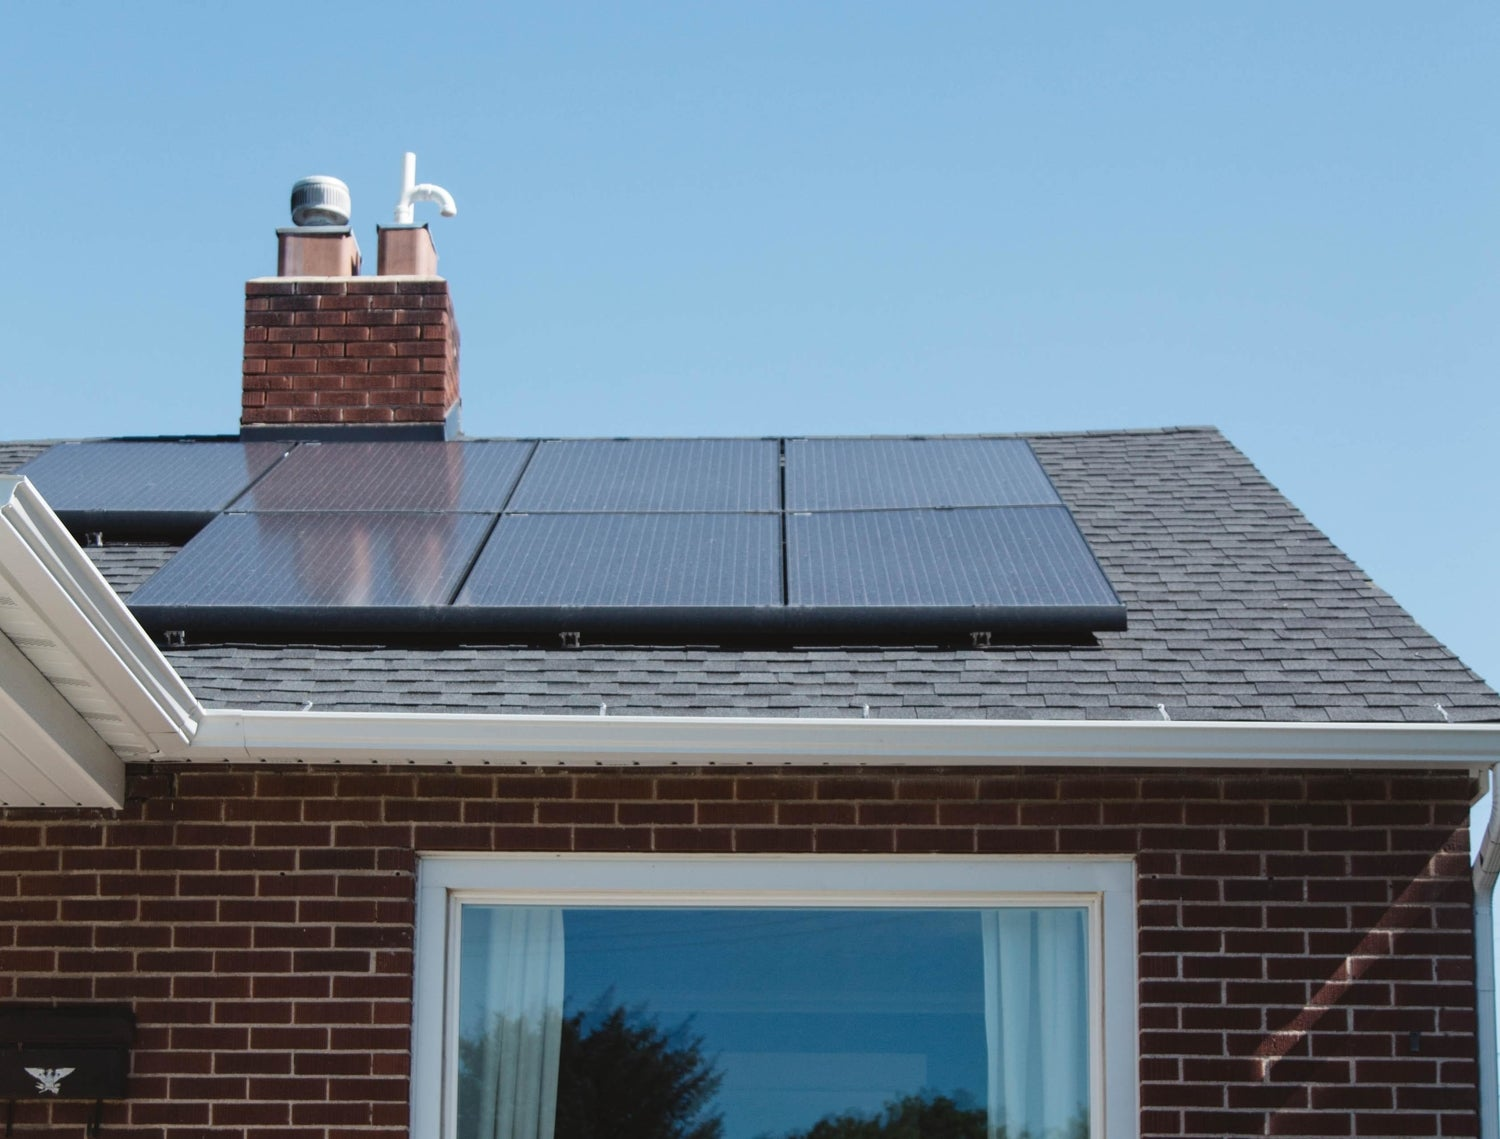 a residential home with solar panels on the roof